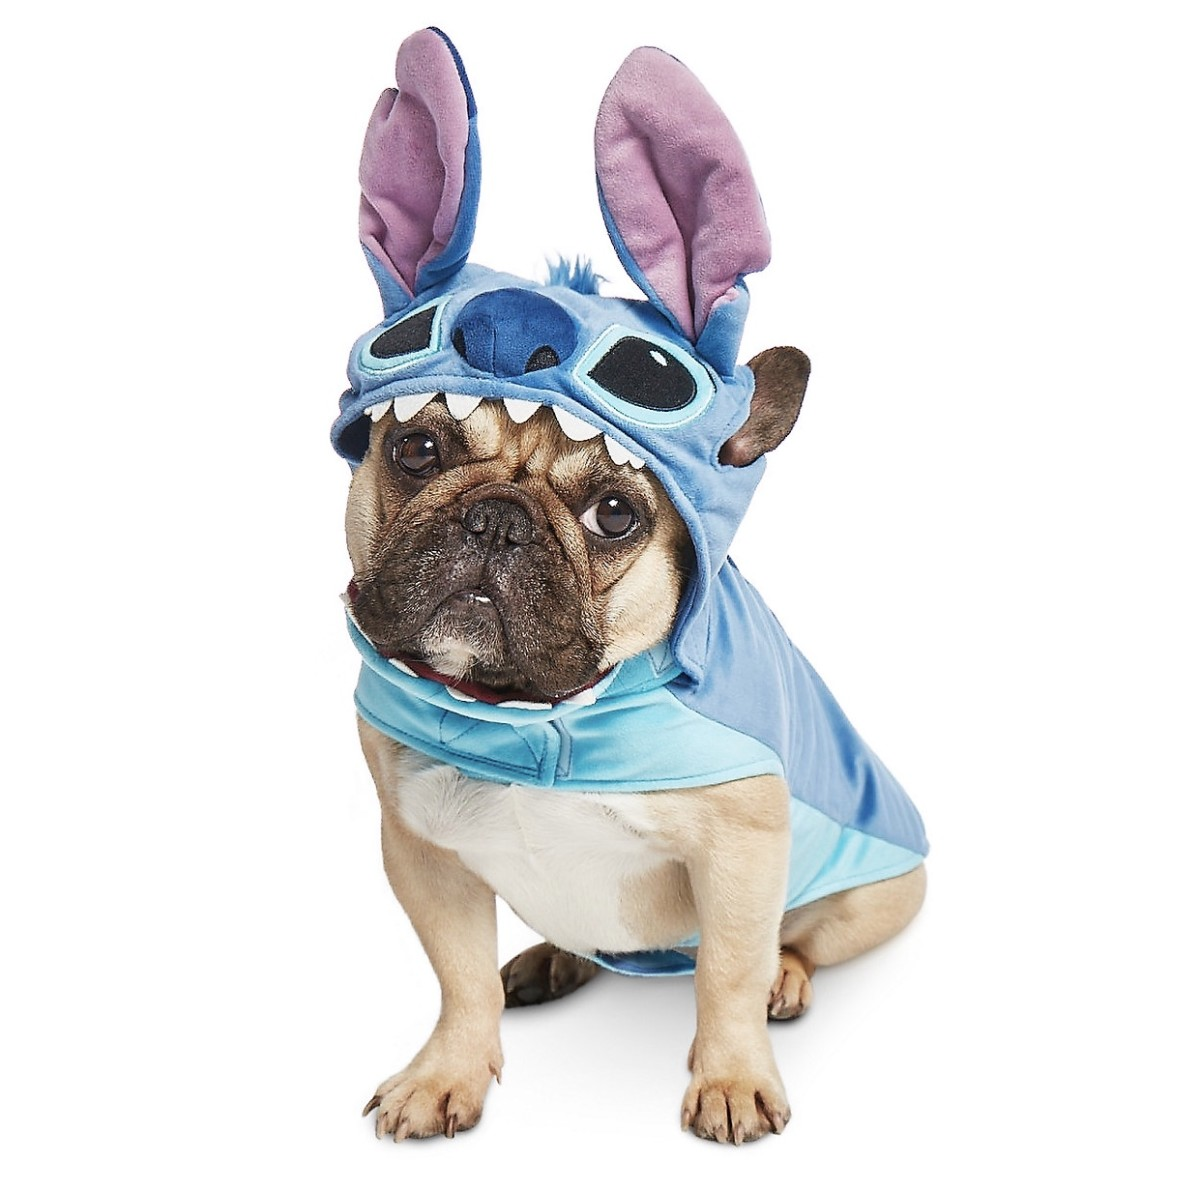 New Disney Halloween Costumes for Pets at shopDisney! 2